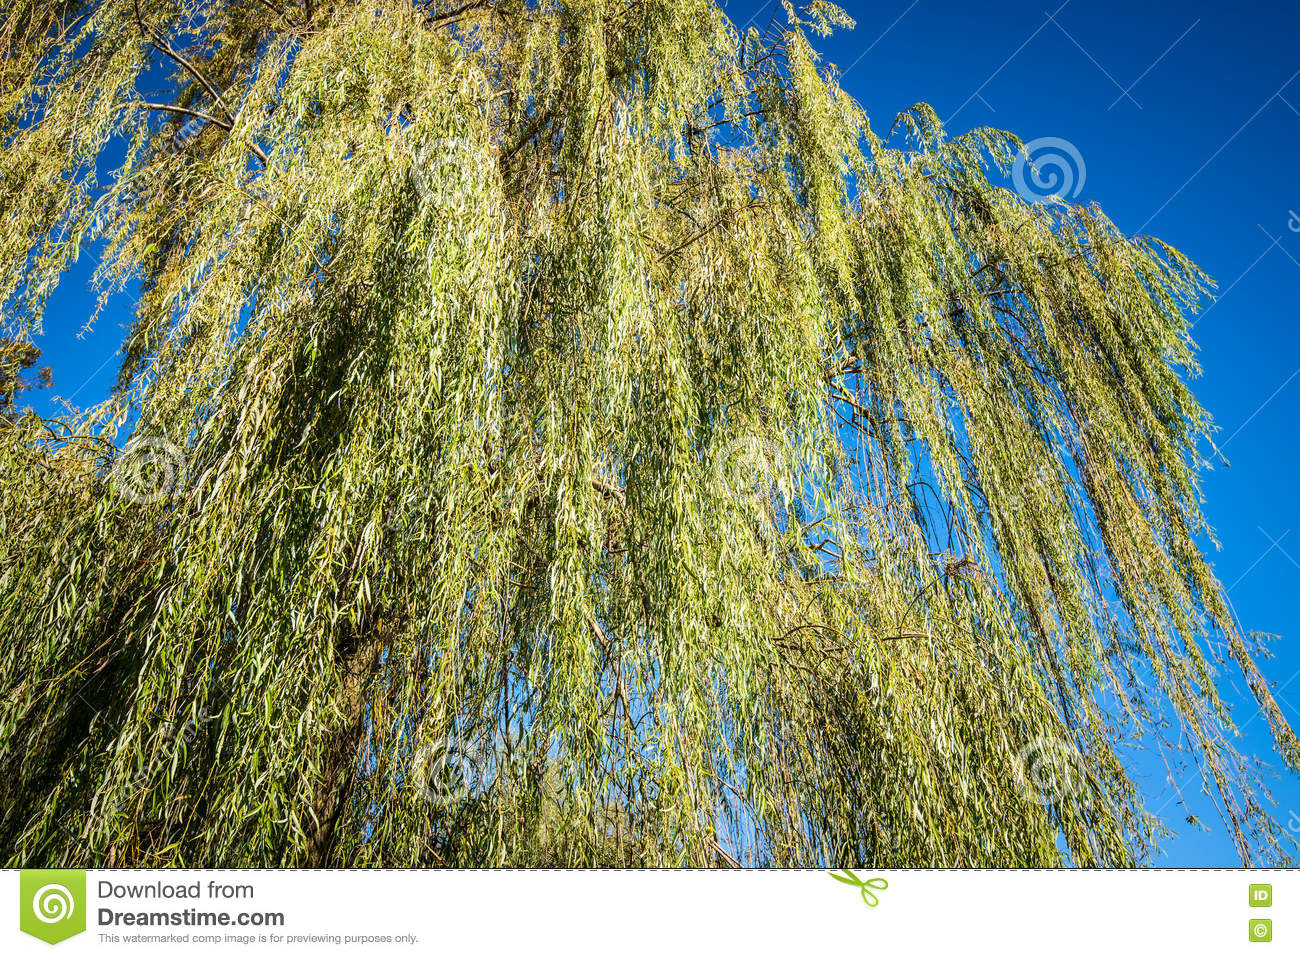 Weeping willow foliage